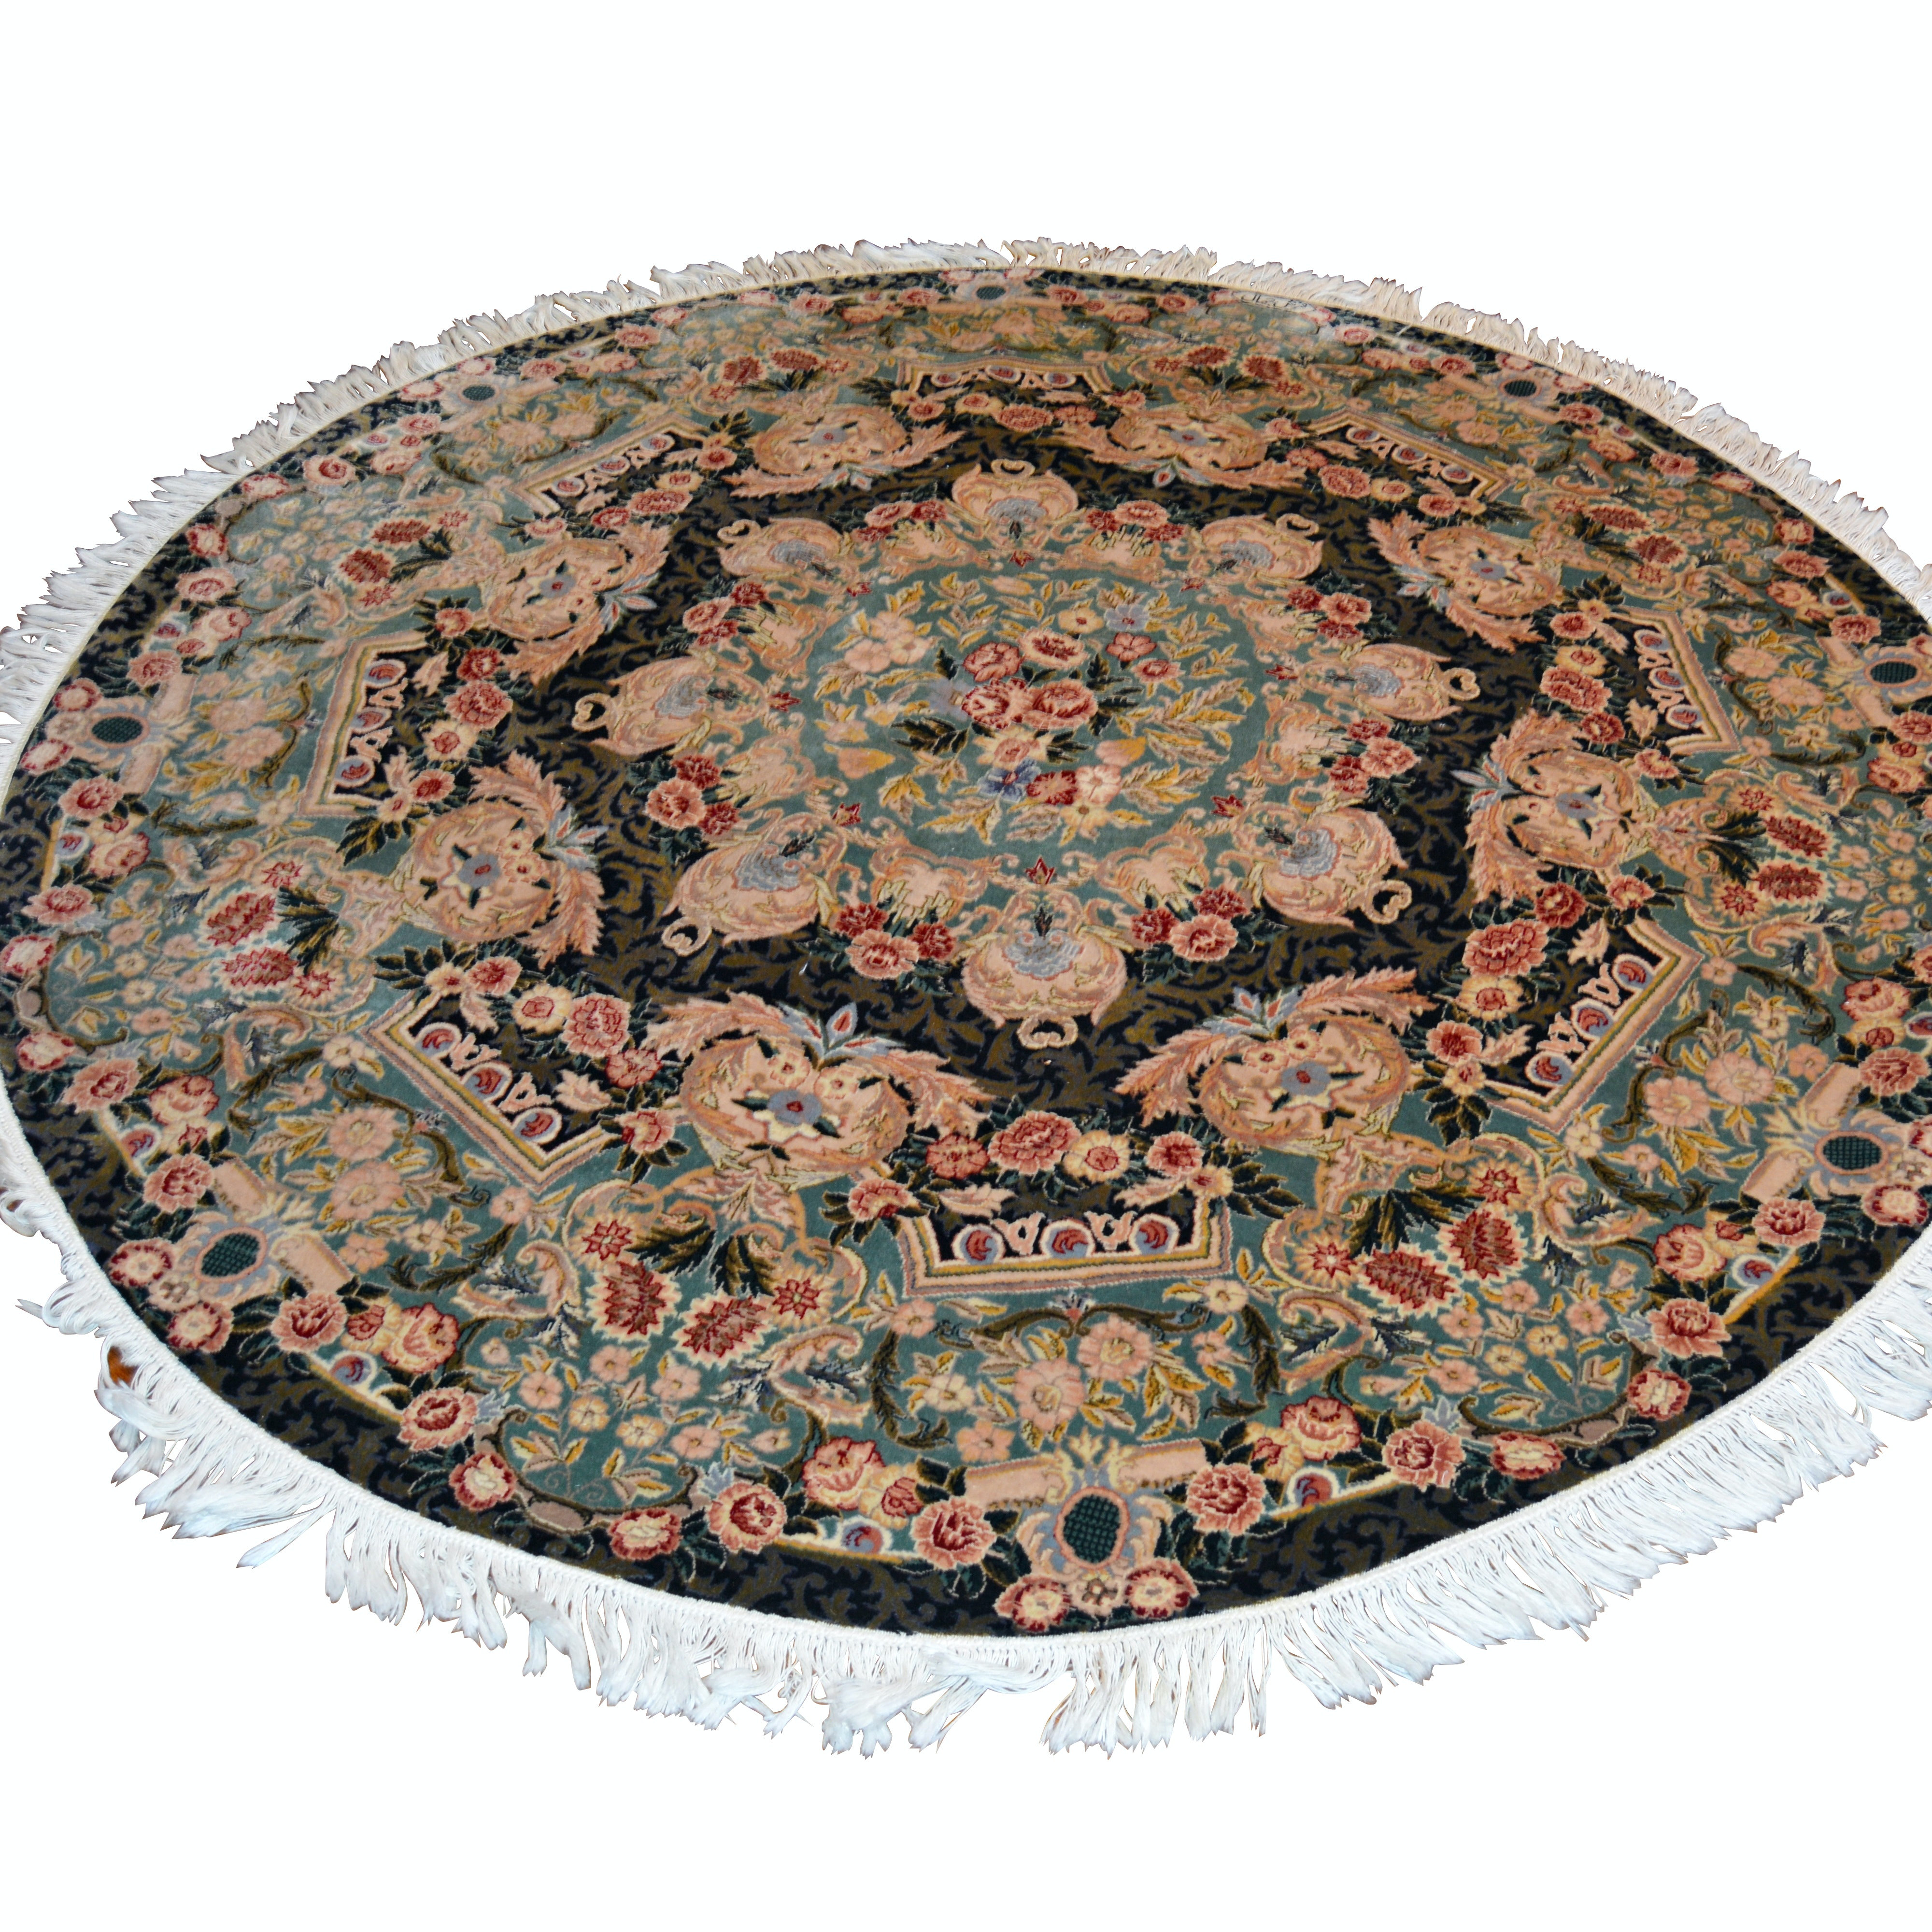 Hand-Knotted Pakistan Round Wool Area Rug